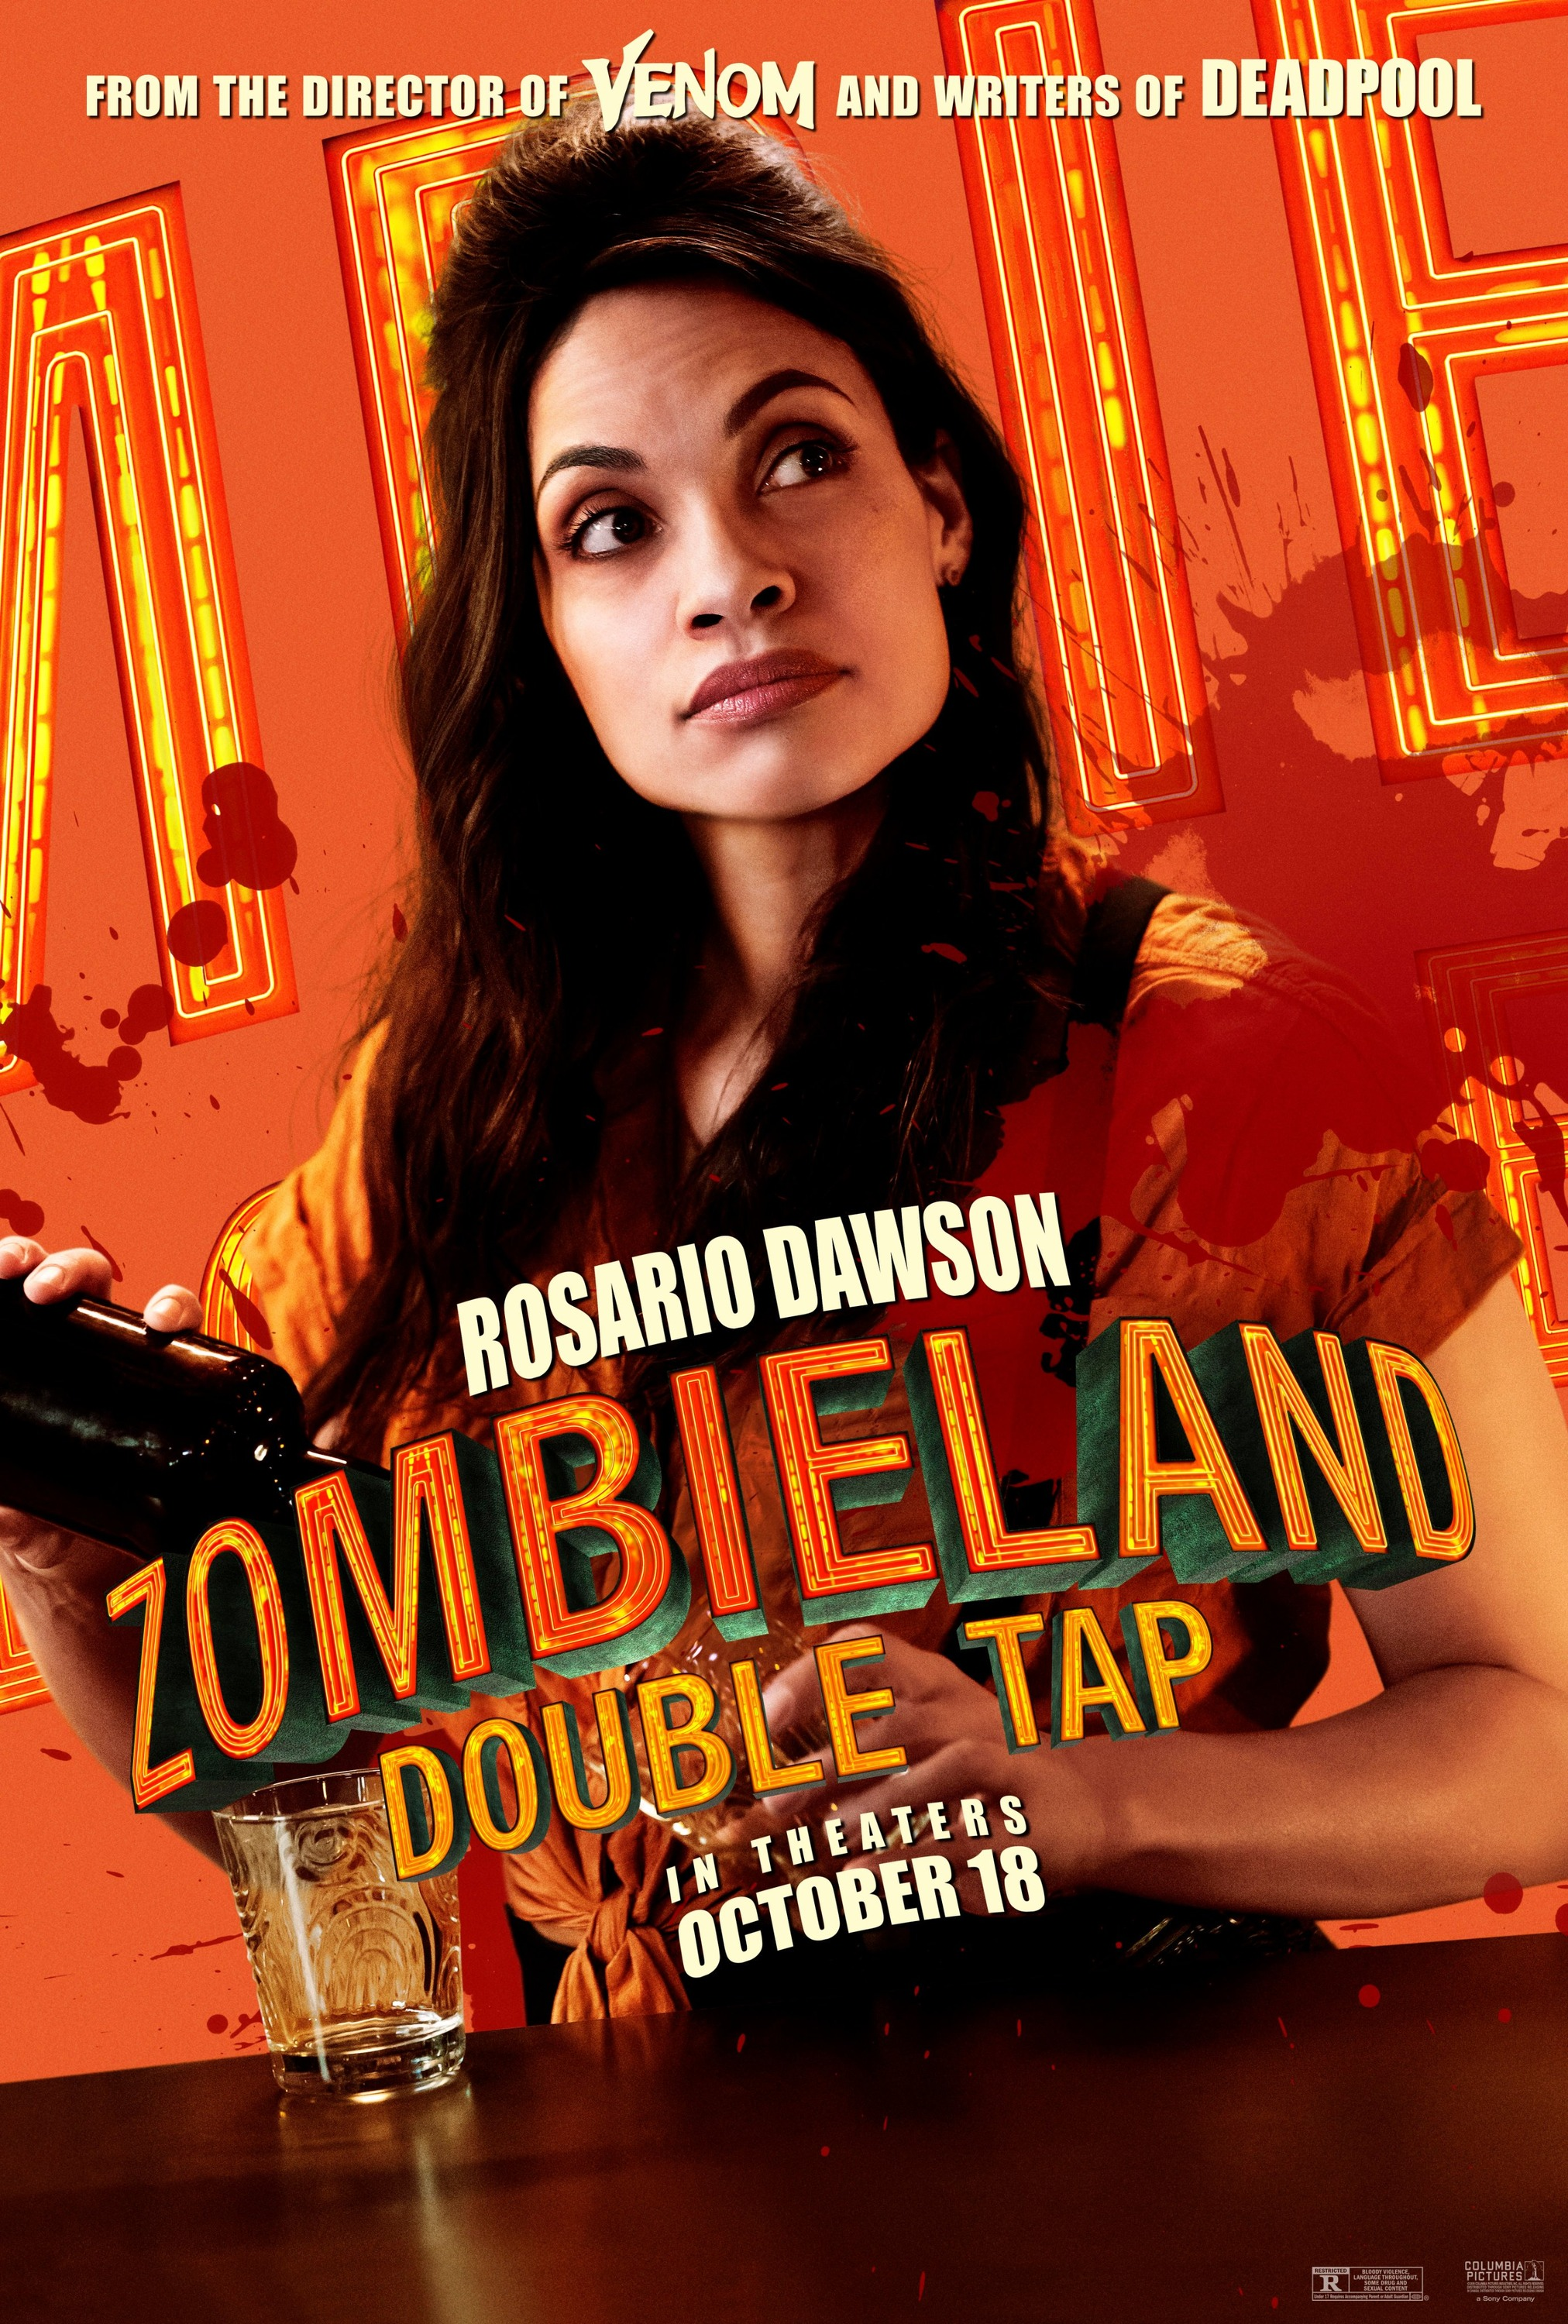 Zombieland: Double Tap (2019) Character Poster - Rosario Dawson as Nevada